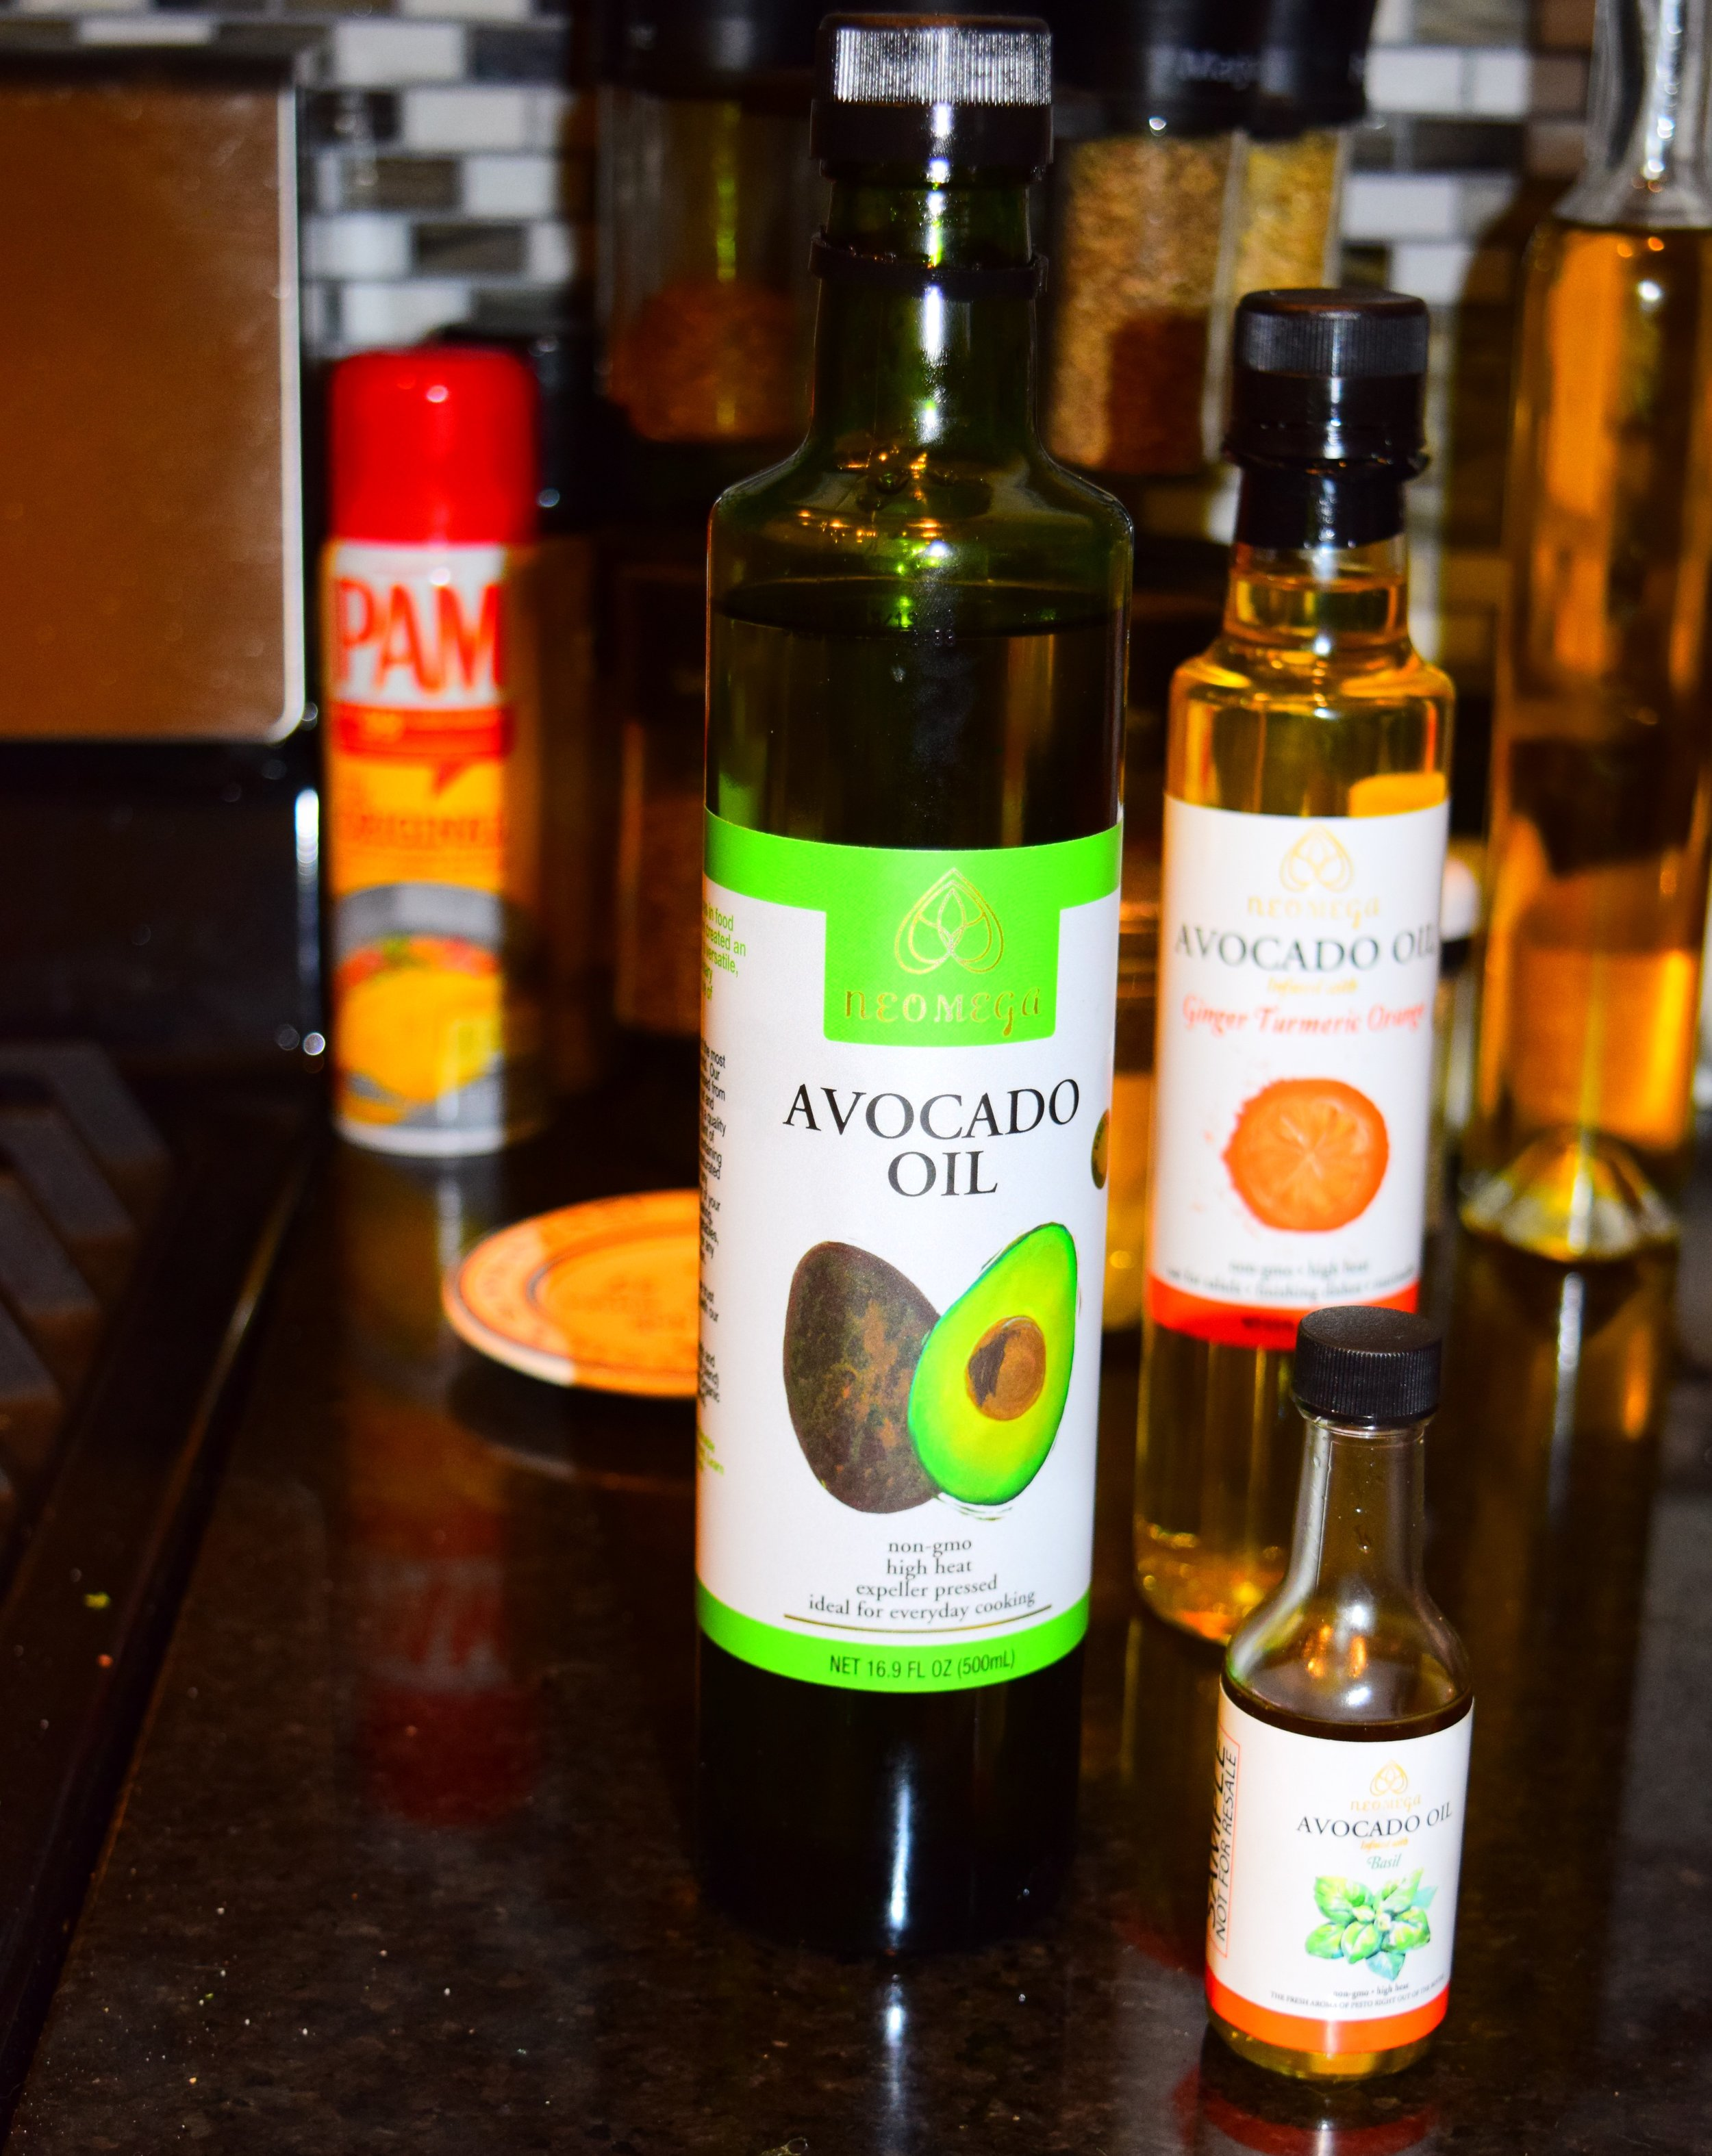 Neomega Avocado Oil